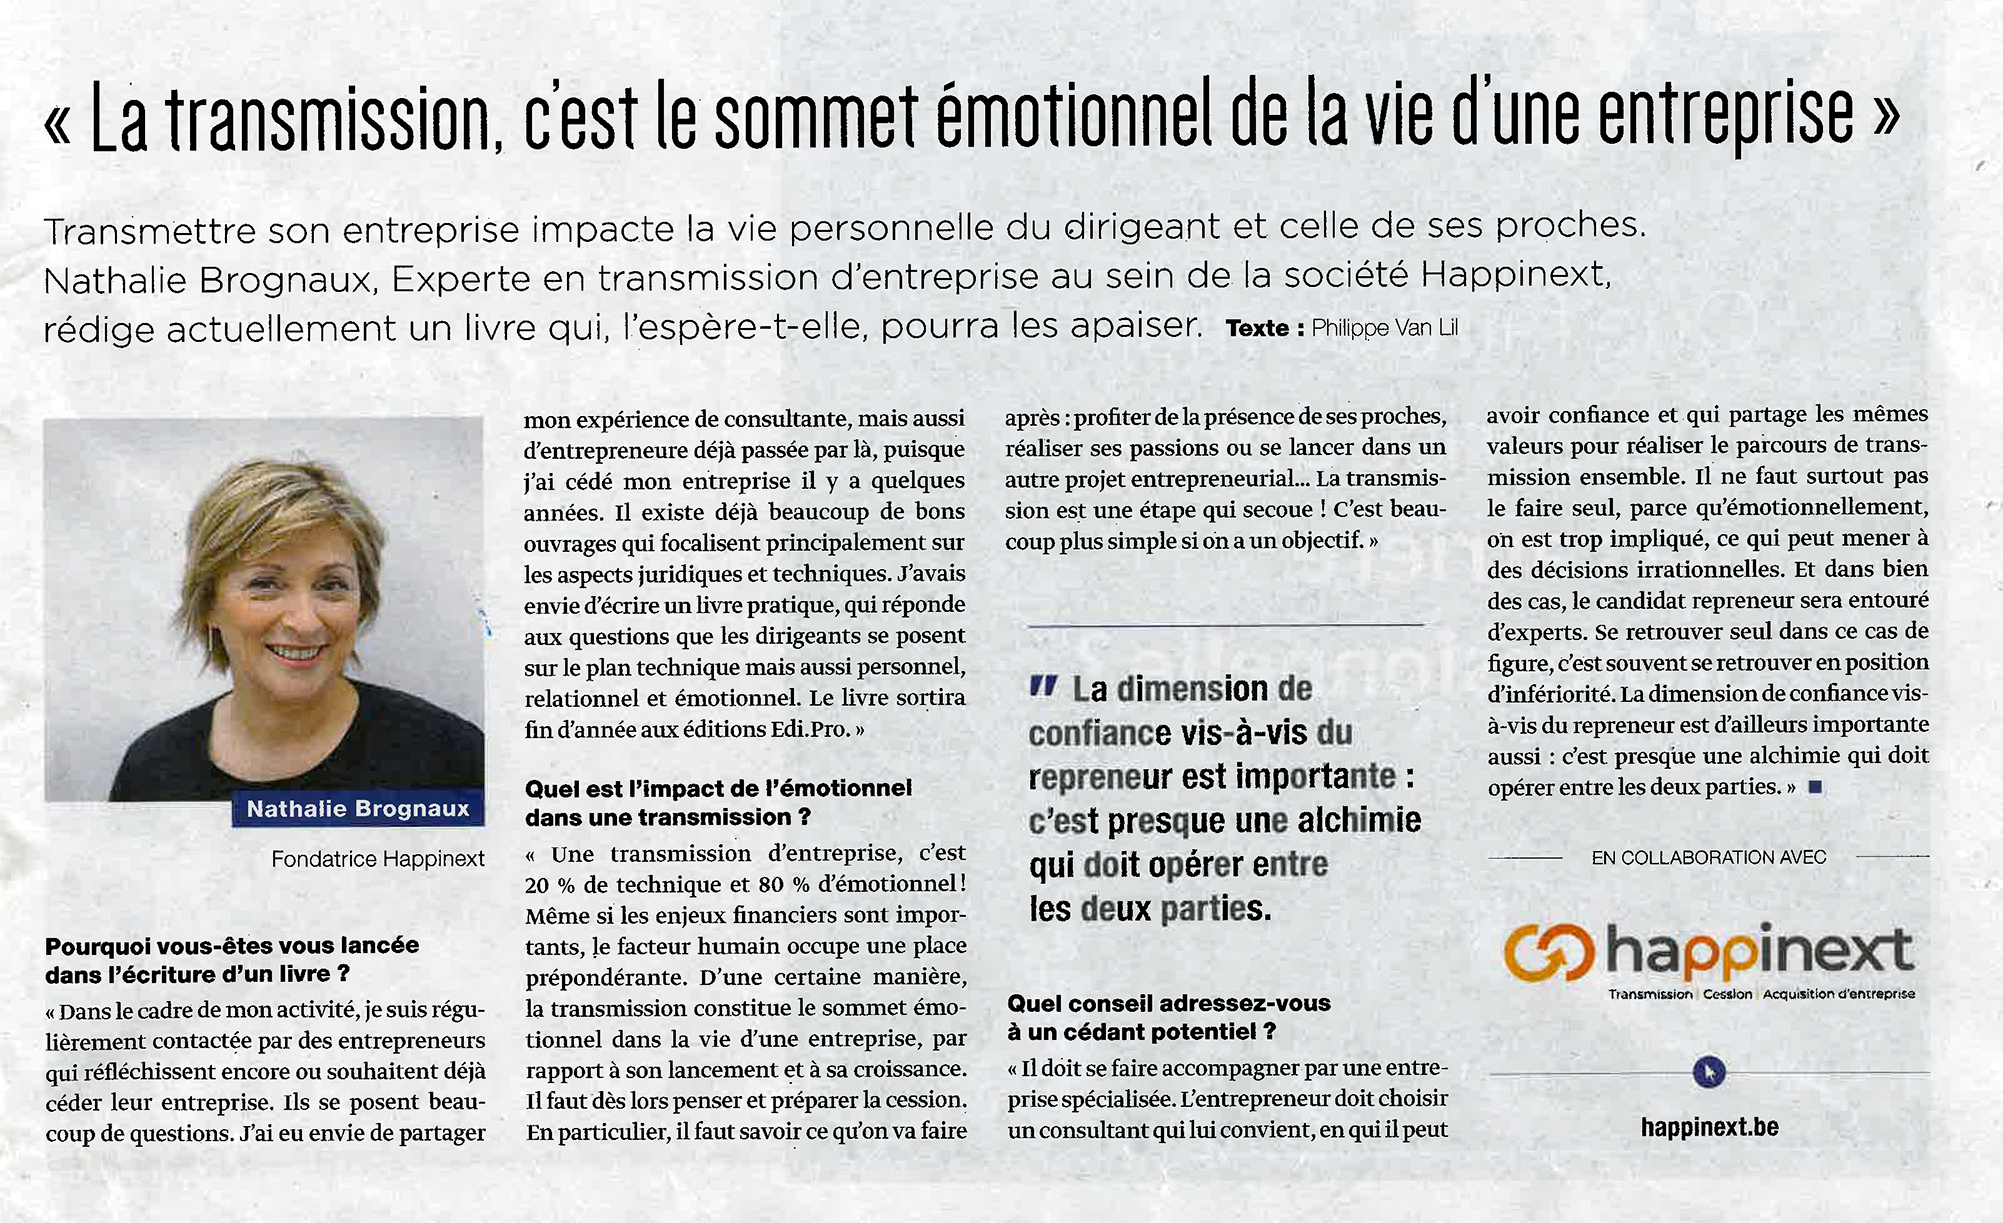 Trends Tendances Article Transmission, cession et acquisition d'entreprise Happinext Nathali Brognaux